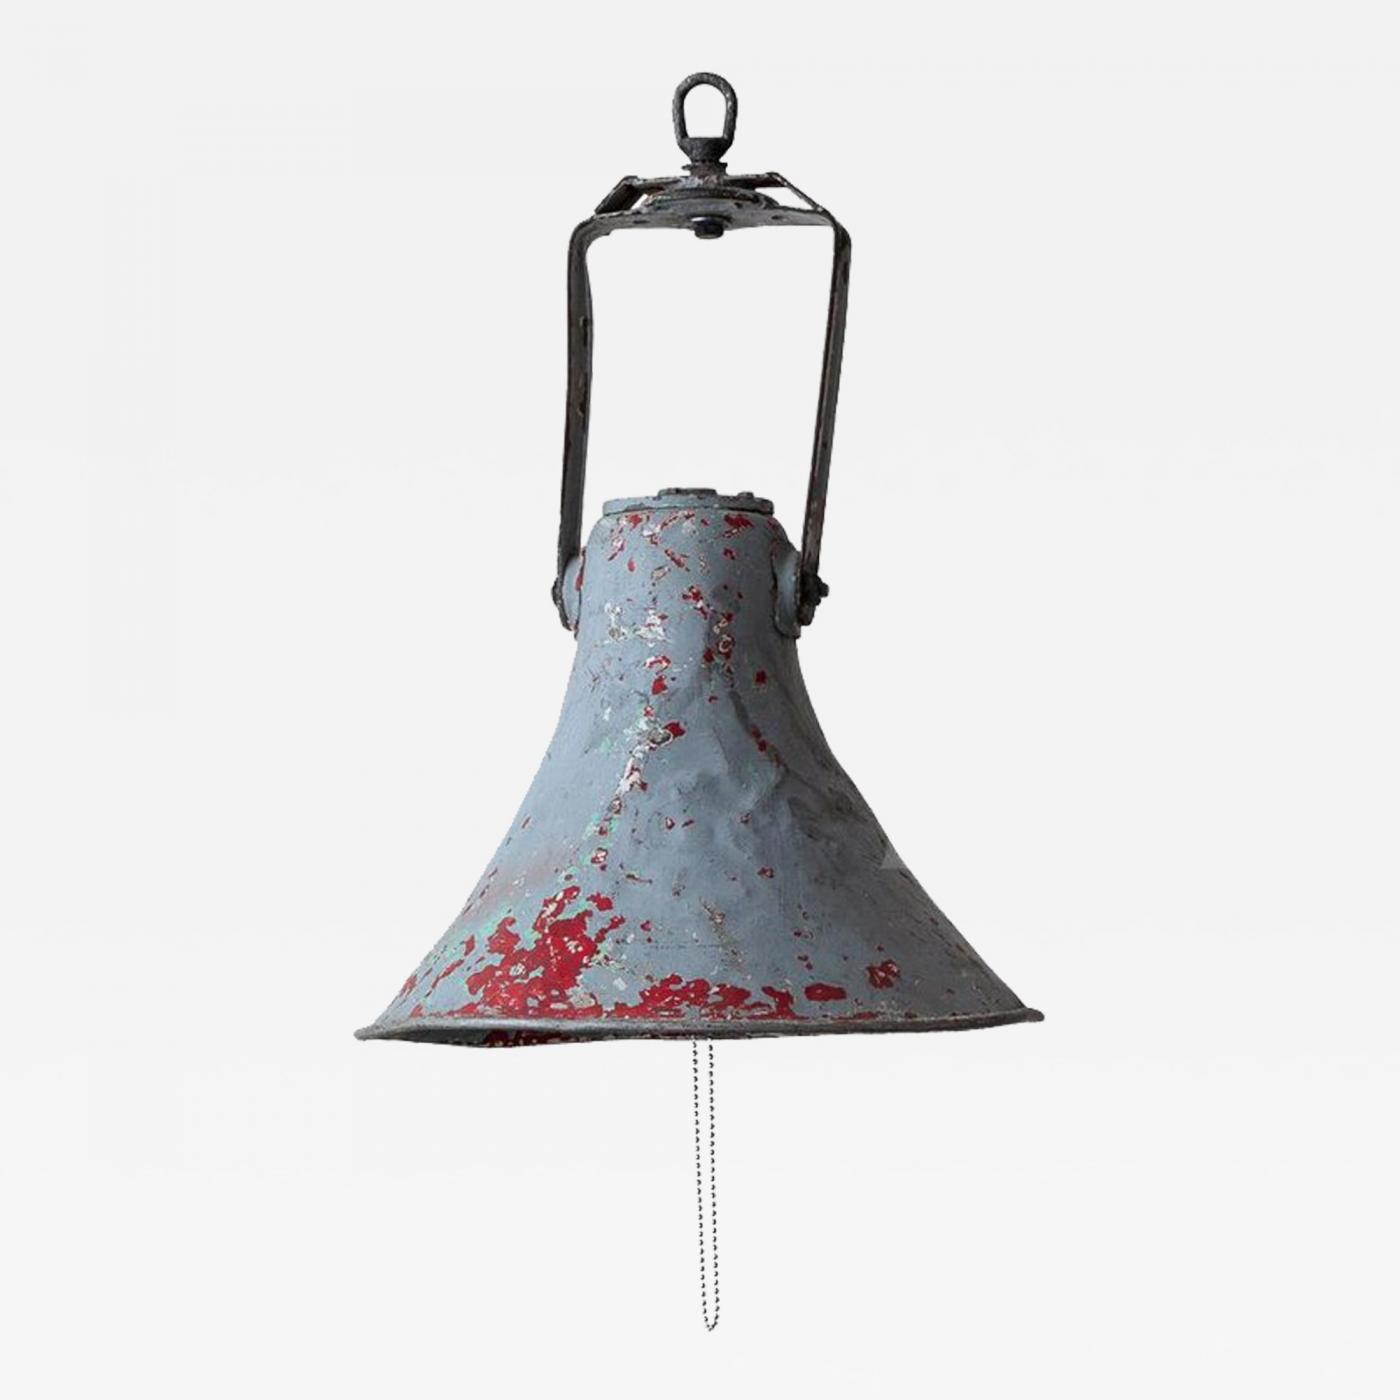 French Vintage Industrial Pendant Light